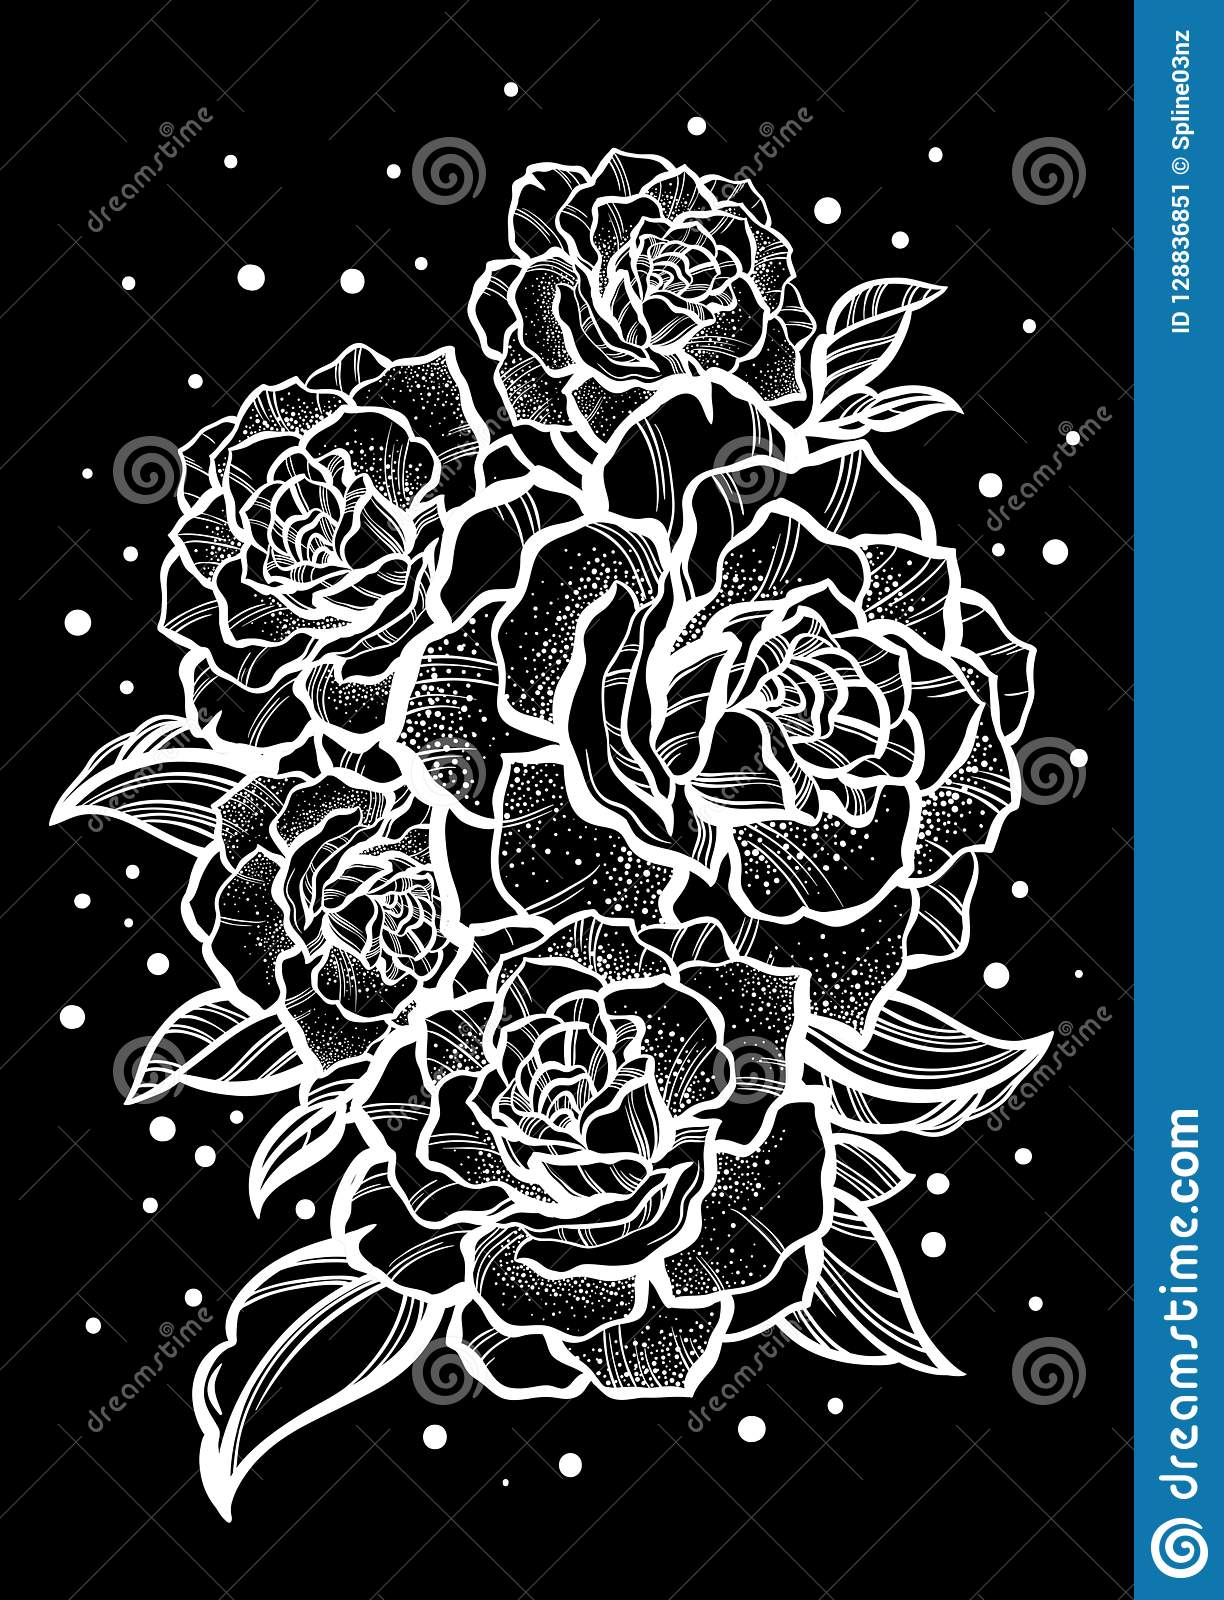 Belles roses tirées par la main Tatouage Art Composition graphique en vintage Illustration de vecteur d isolement T-shirts, copie